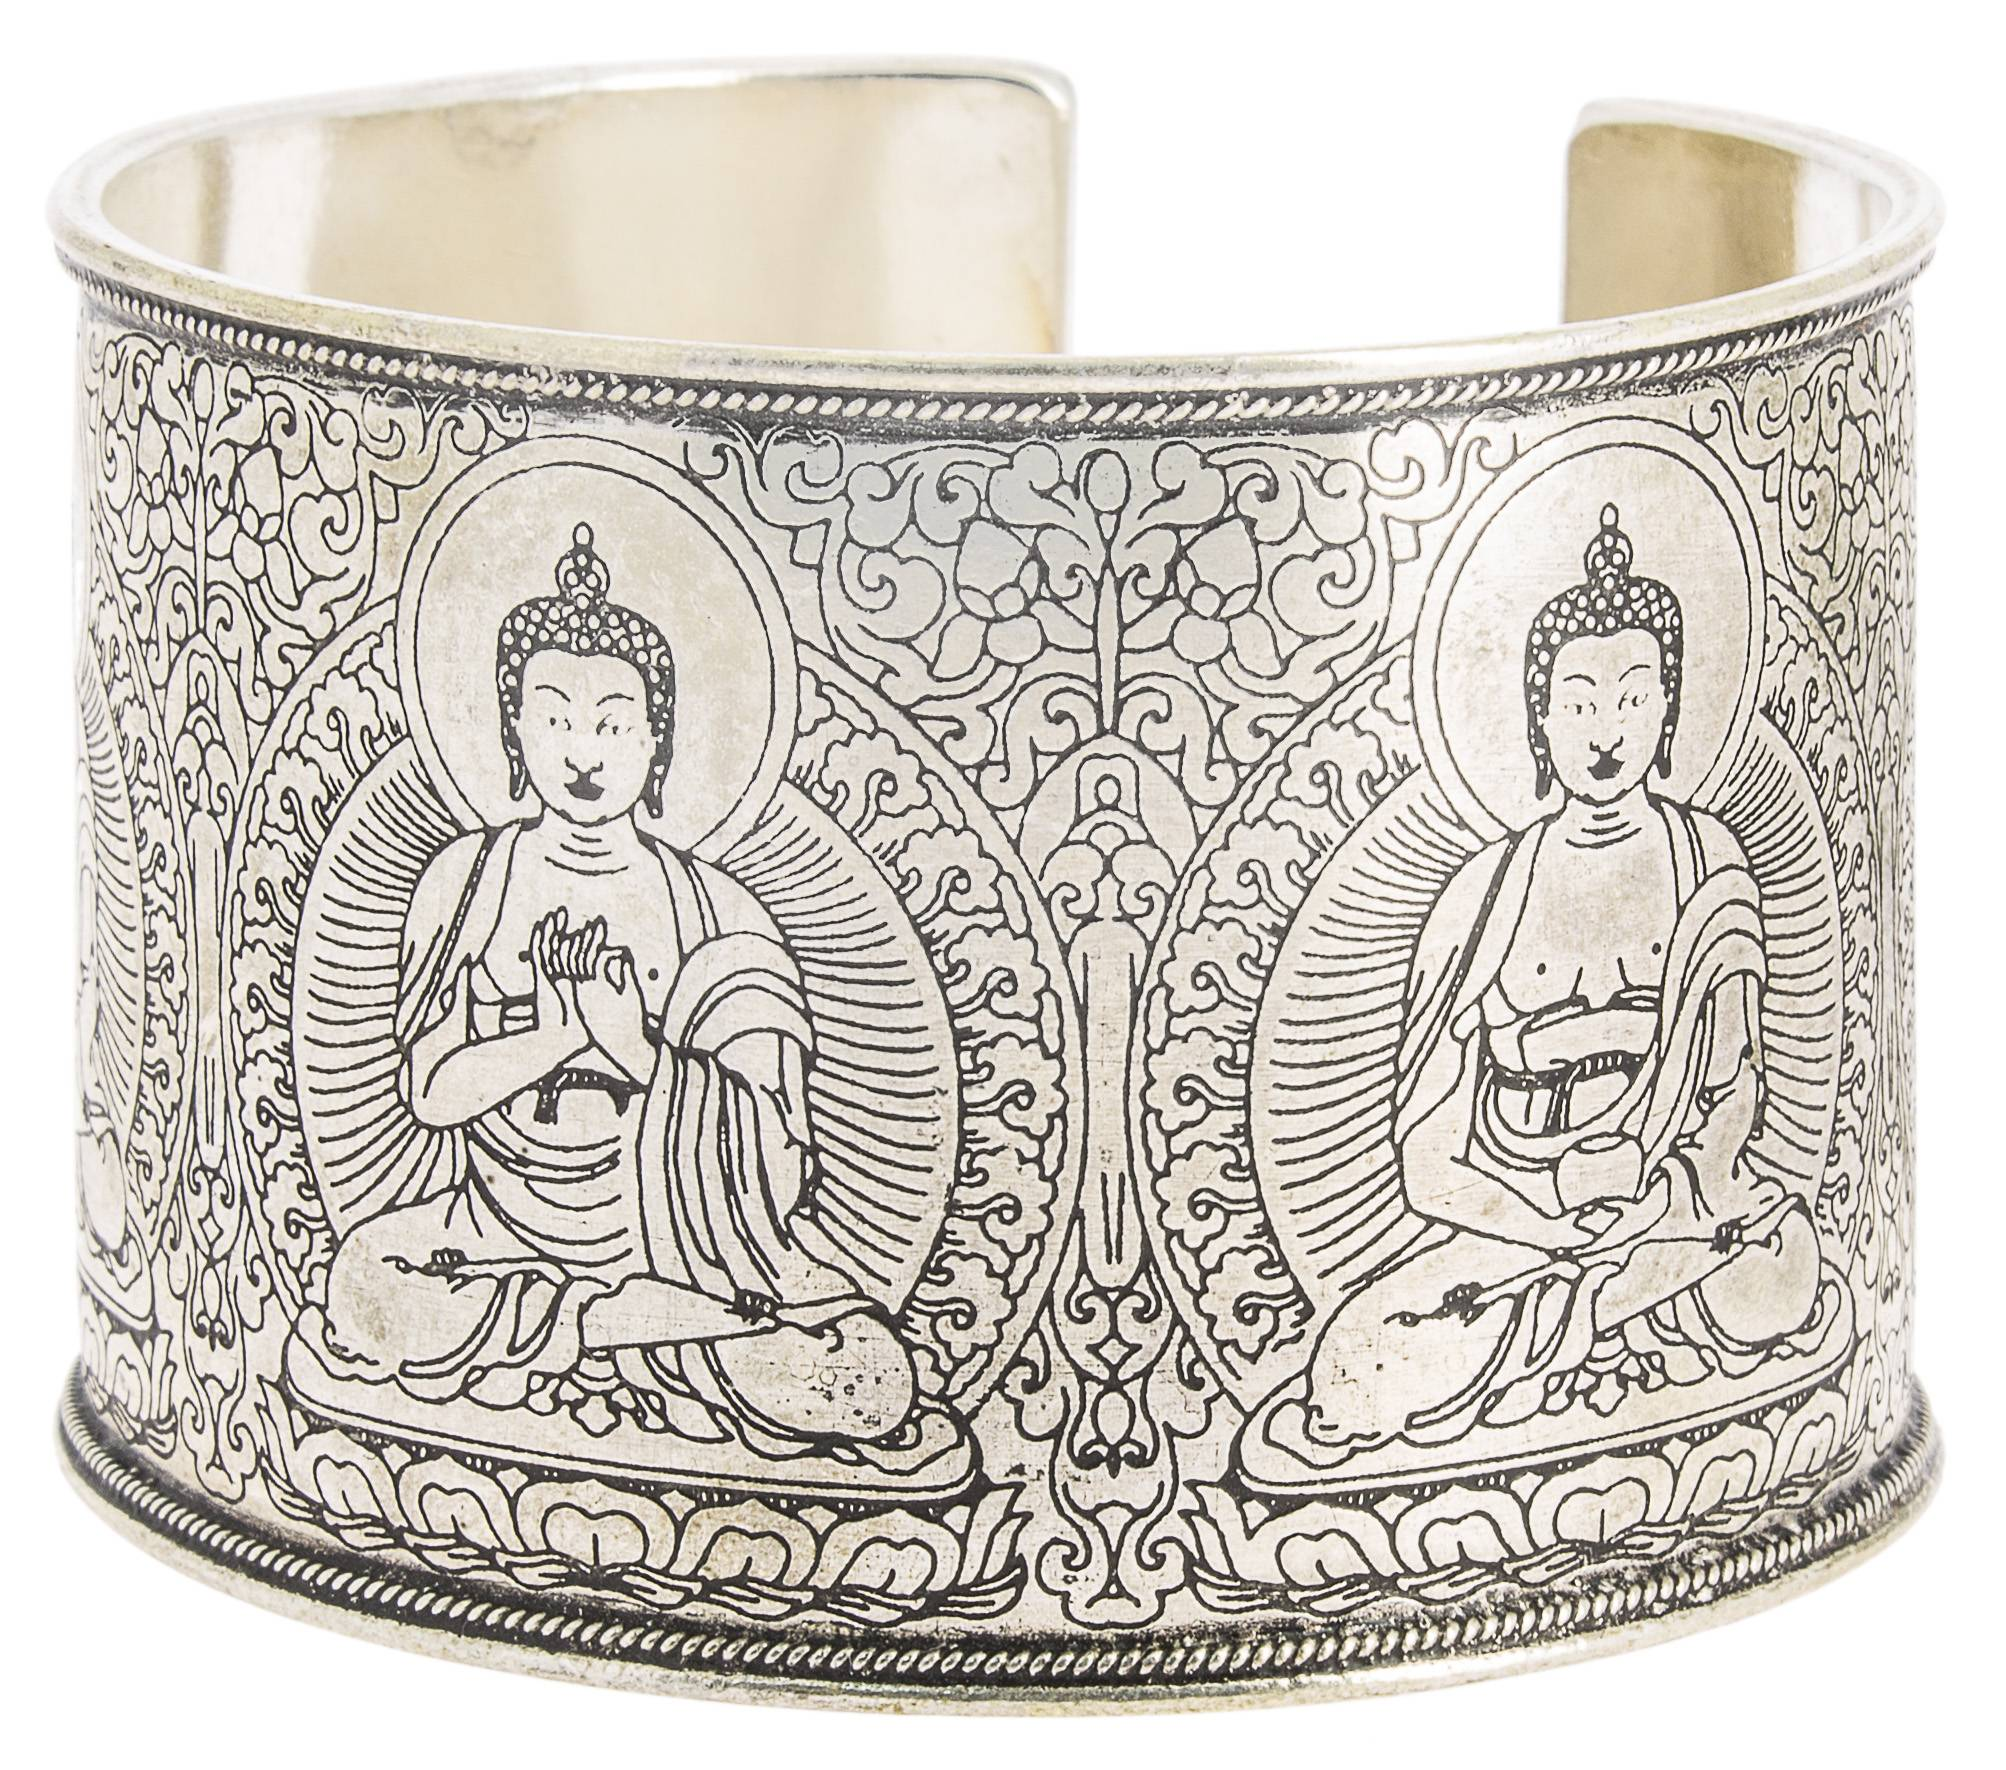 Bracelet of the Five Buddhas